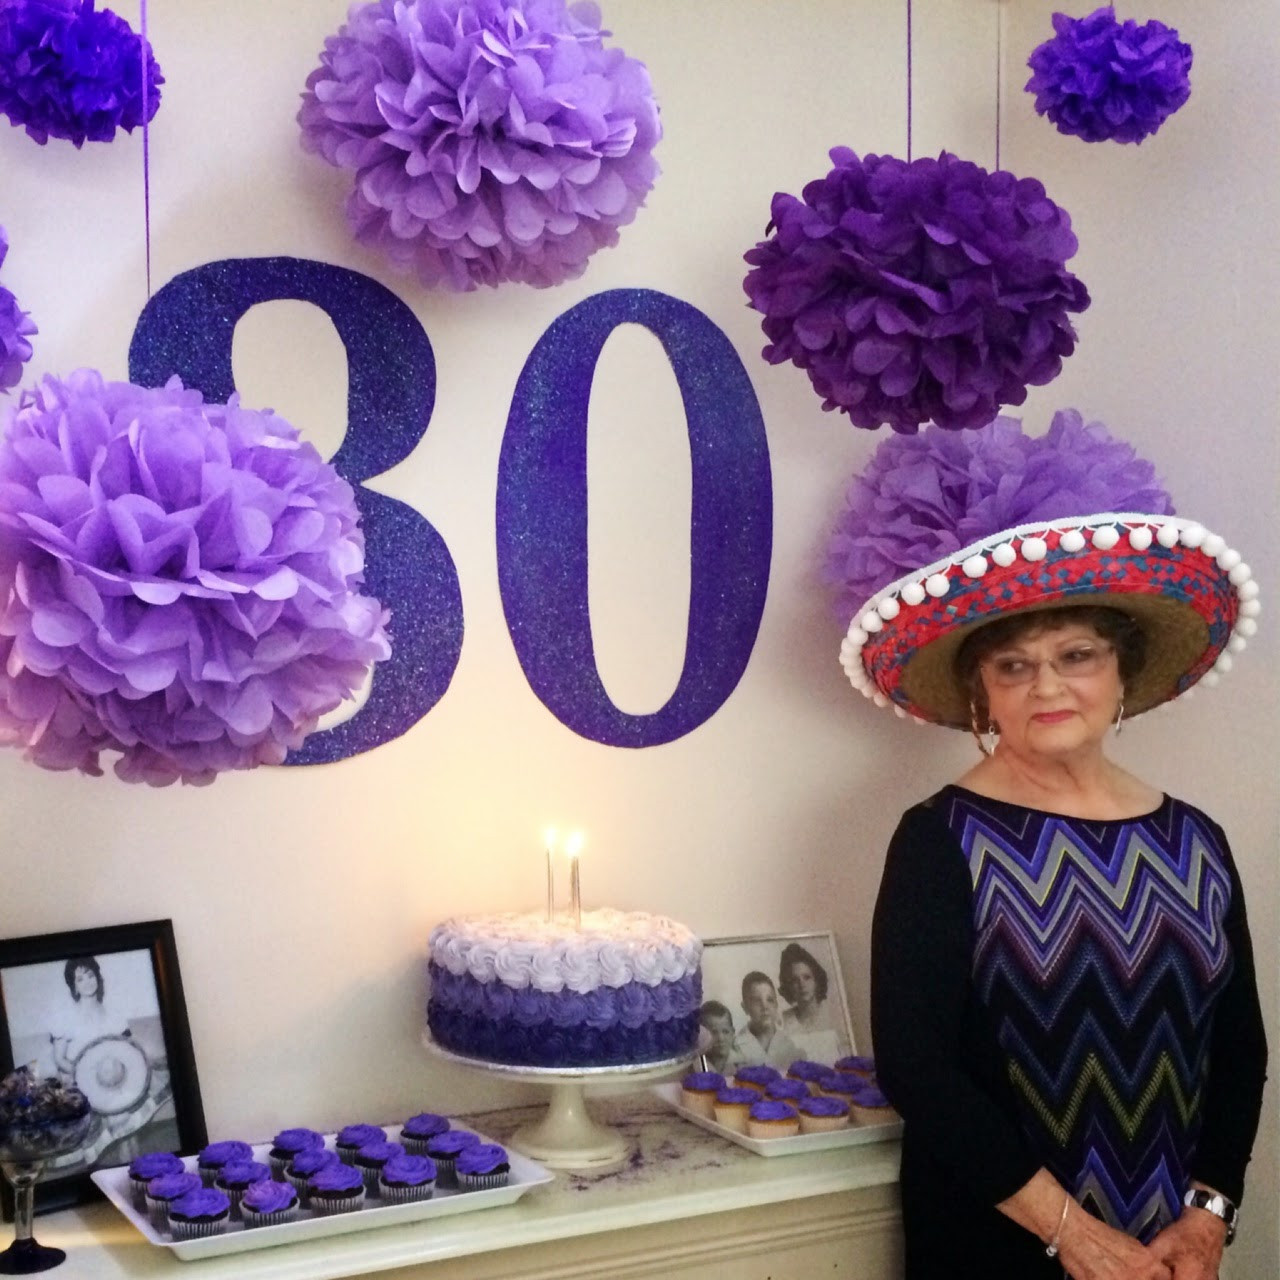 Best ideas about 80th Birthday Decor . Save or Pin Southern FIT 80th Birthday Party & Decor Now.